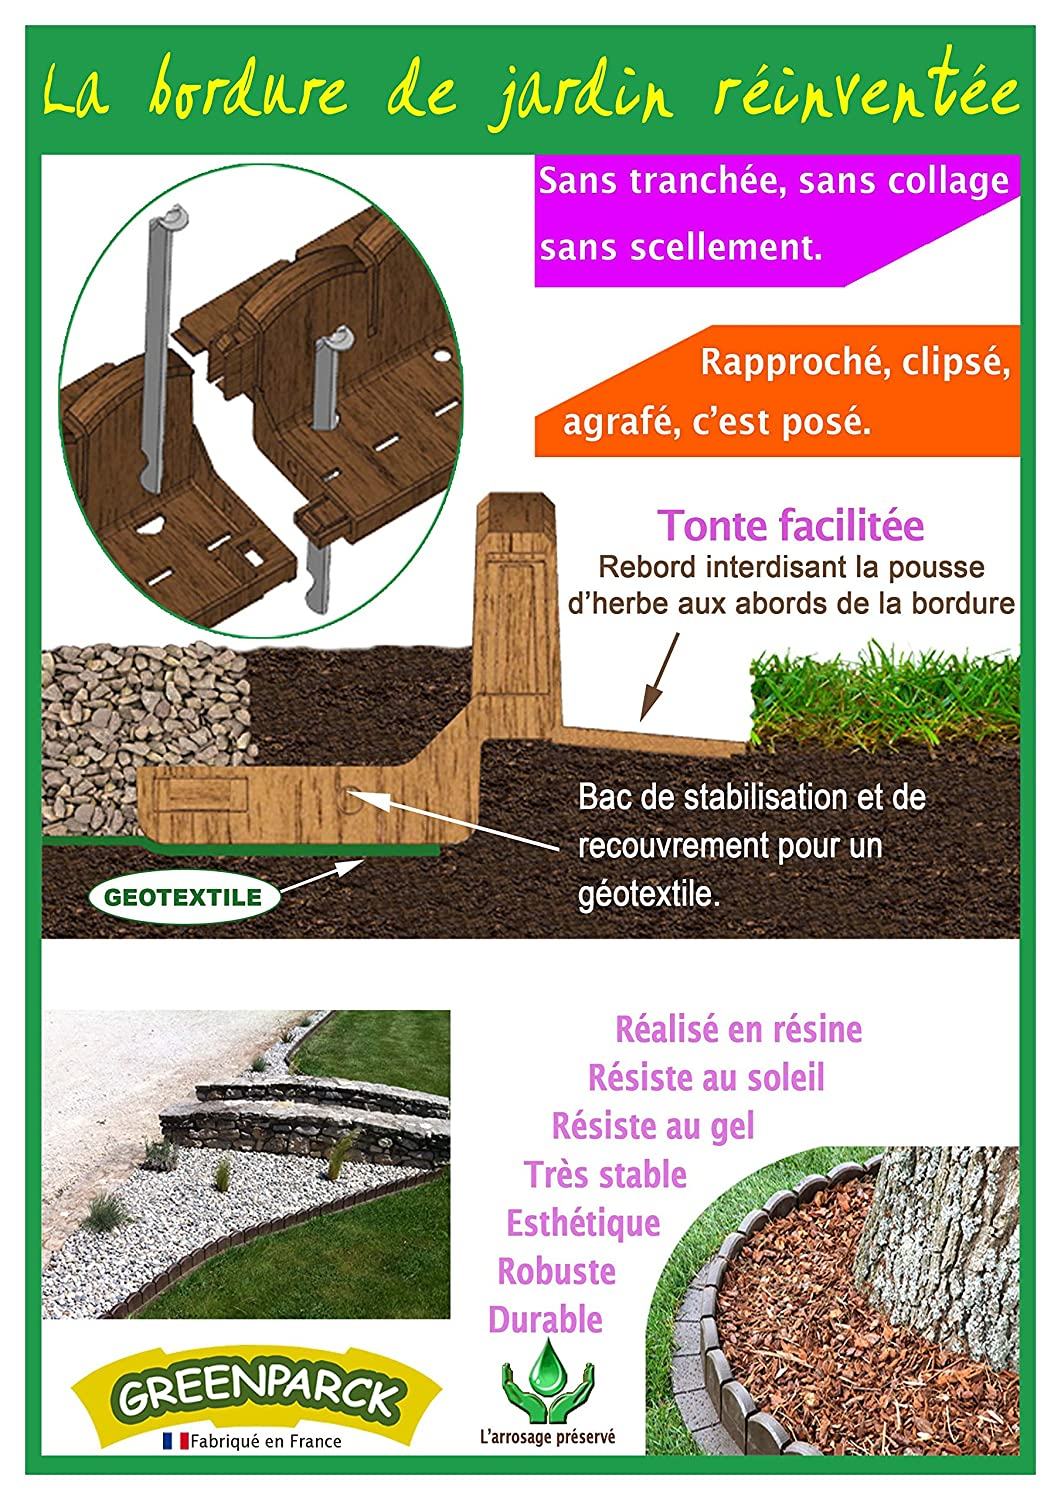 Bordure de jardin en résine composite ANTHRACITE: Amazon.fr: Jardin